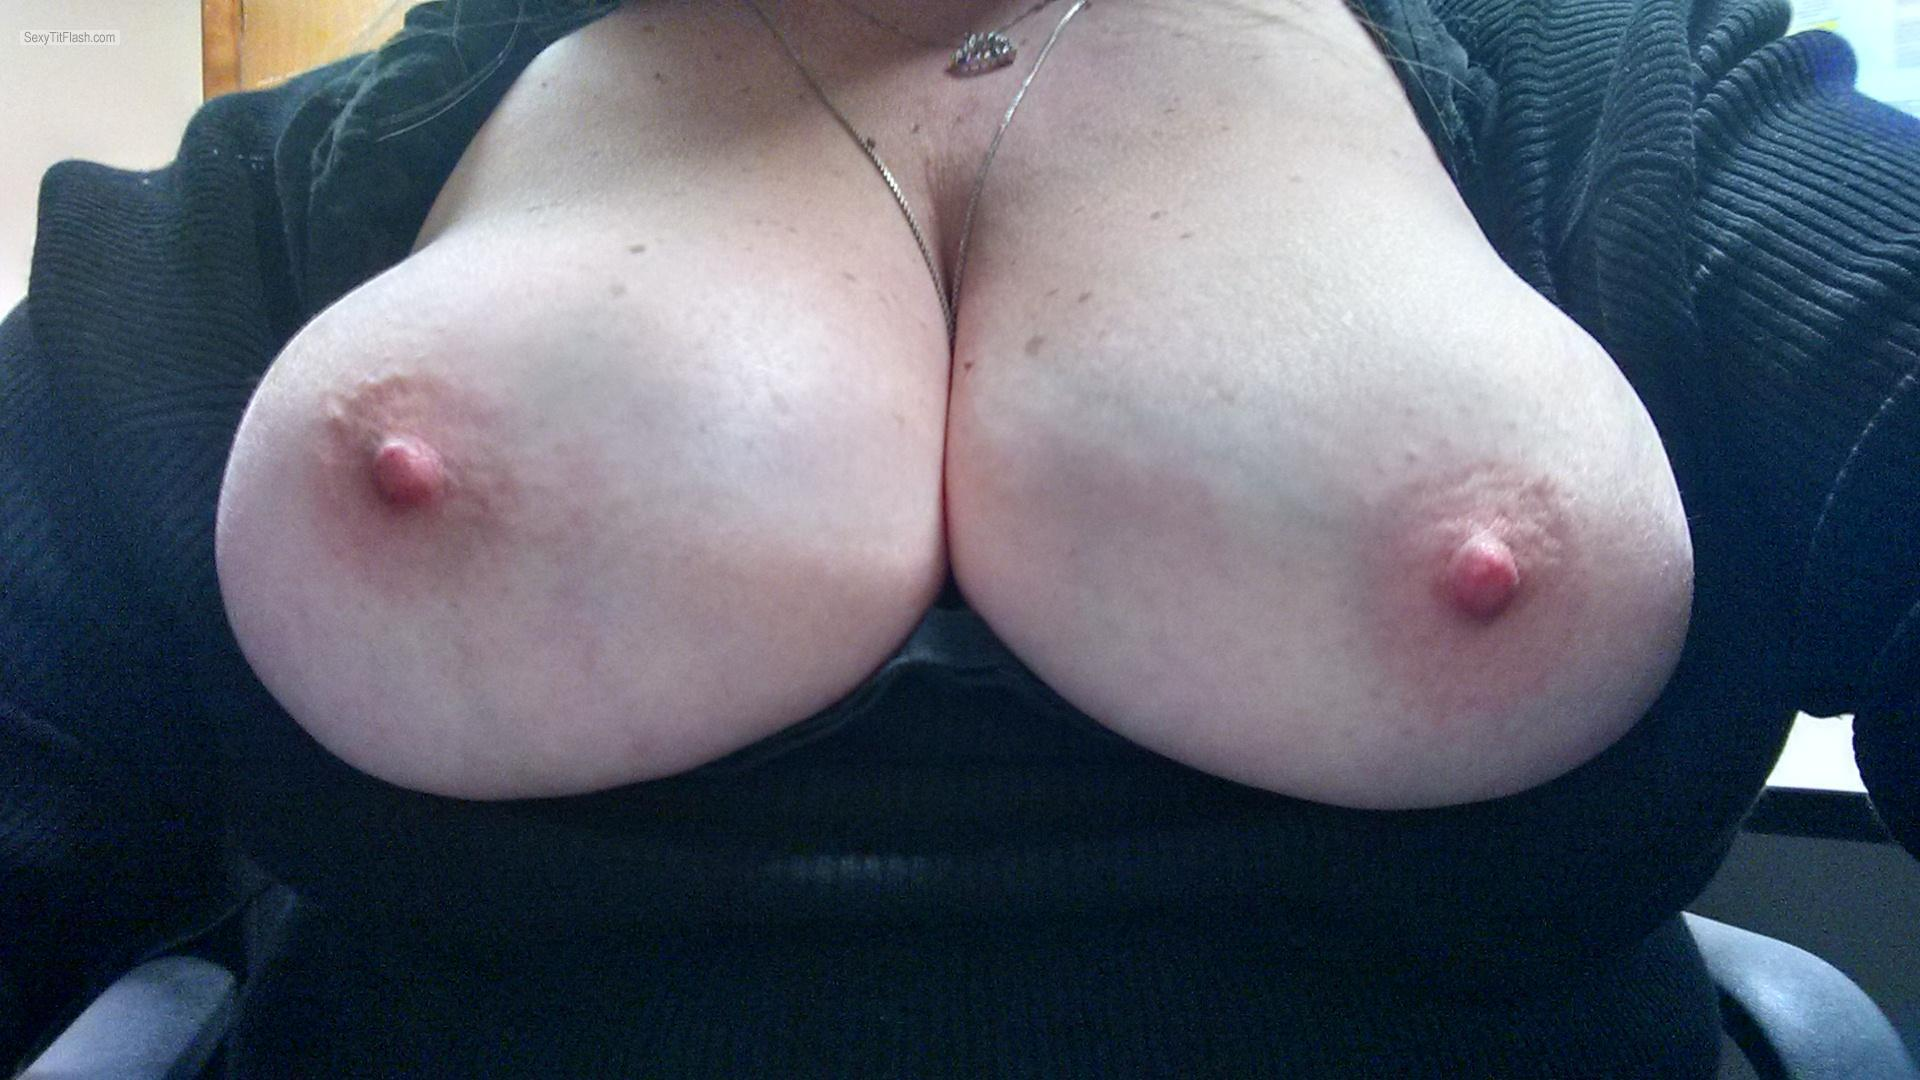 My Big Tits Selfie by Willow